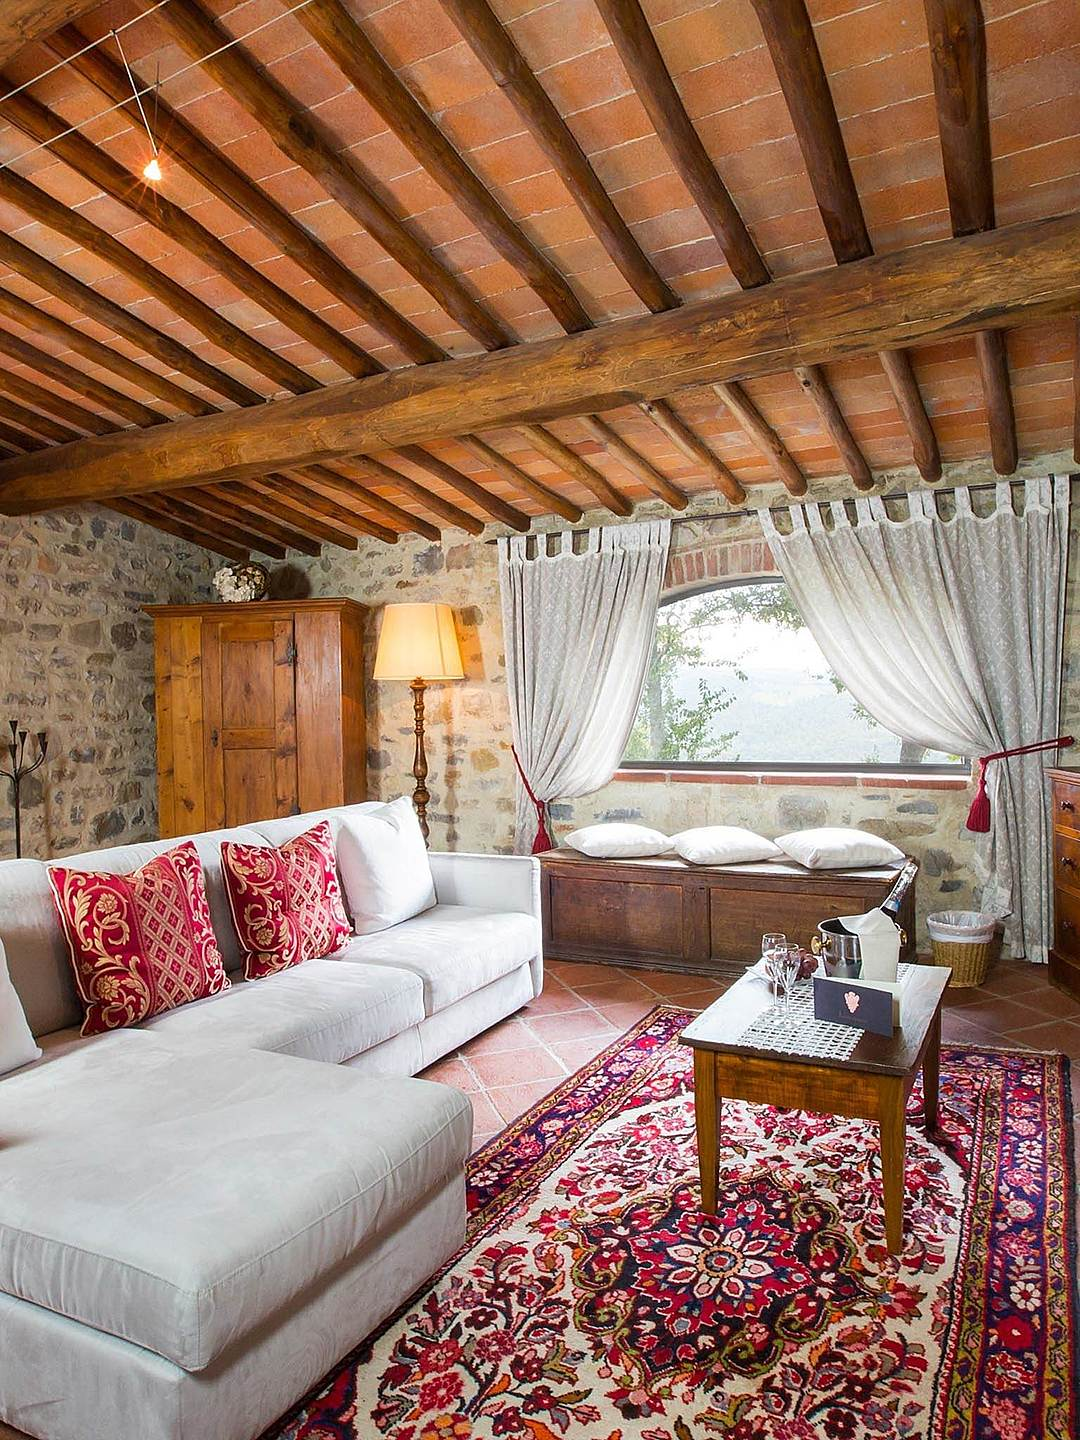 From superior rooms to suites, Livernano offers a unique stays to our guests. Antique furnishing and artisanal pieces are genuine Tuscan.